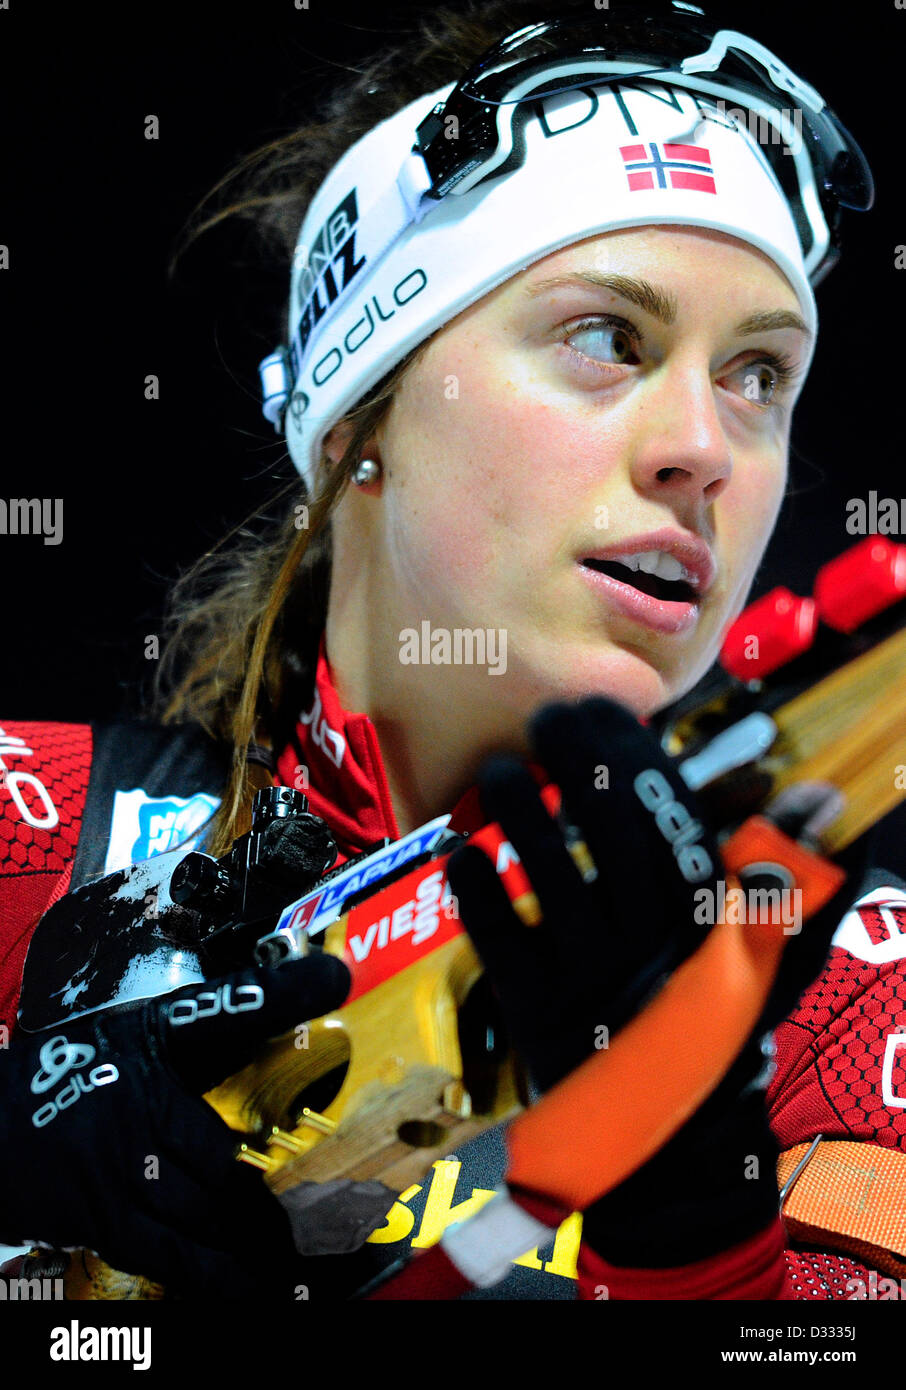 Synnoeve Solemdal of Norway competes during the 2x6km + 2x7.5km mixed relay at the Biathlon World Championship in - Stock Image